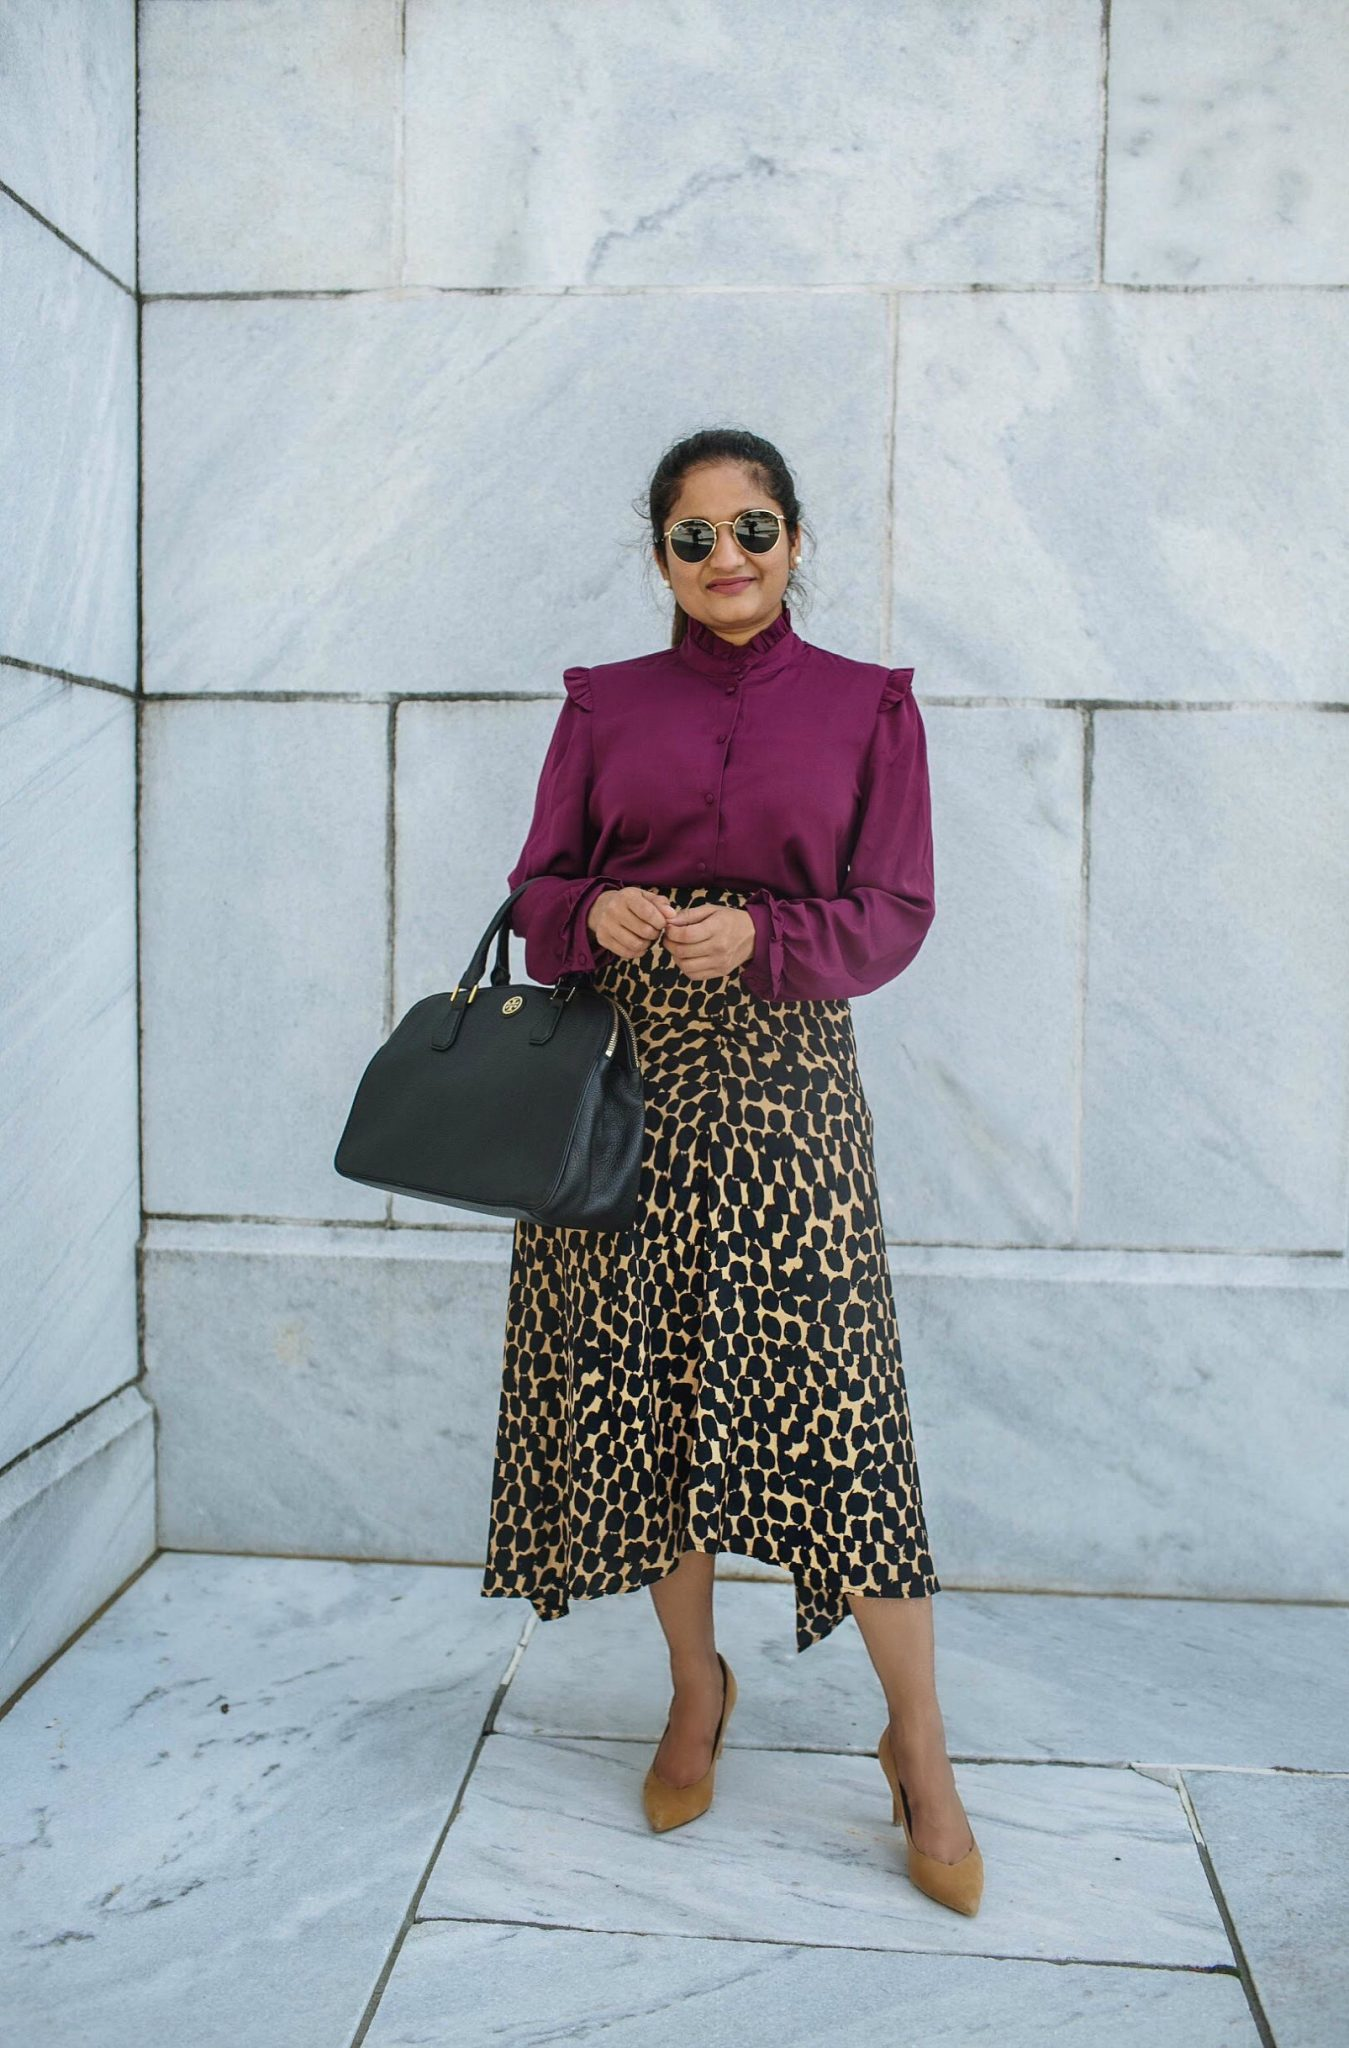 how to wear leopard print skirt to work | Business Causal outfit ideas | Colorful Fall Work Outfits featured by popular US modest fashion blogger, Dreaming Loud